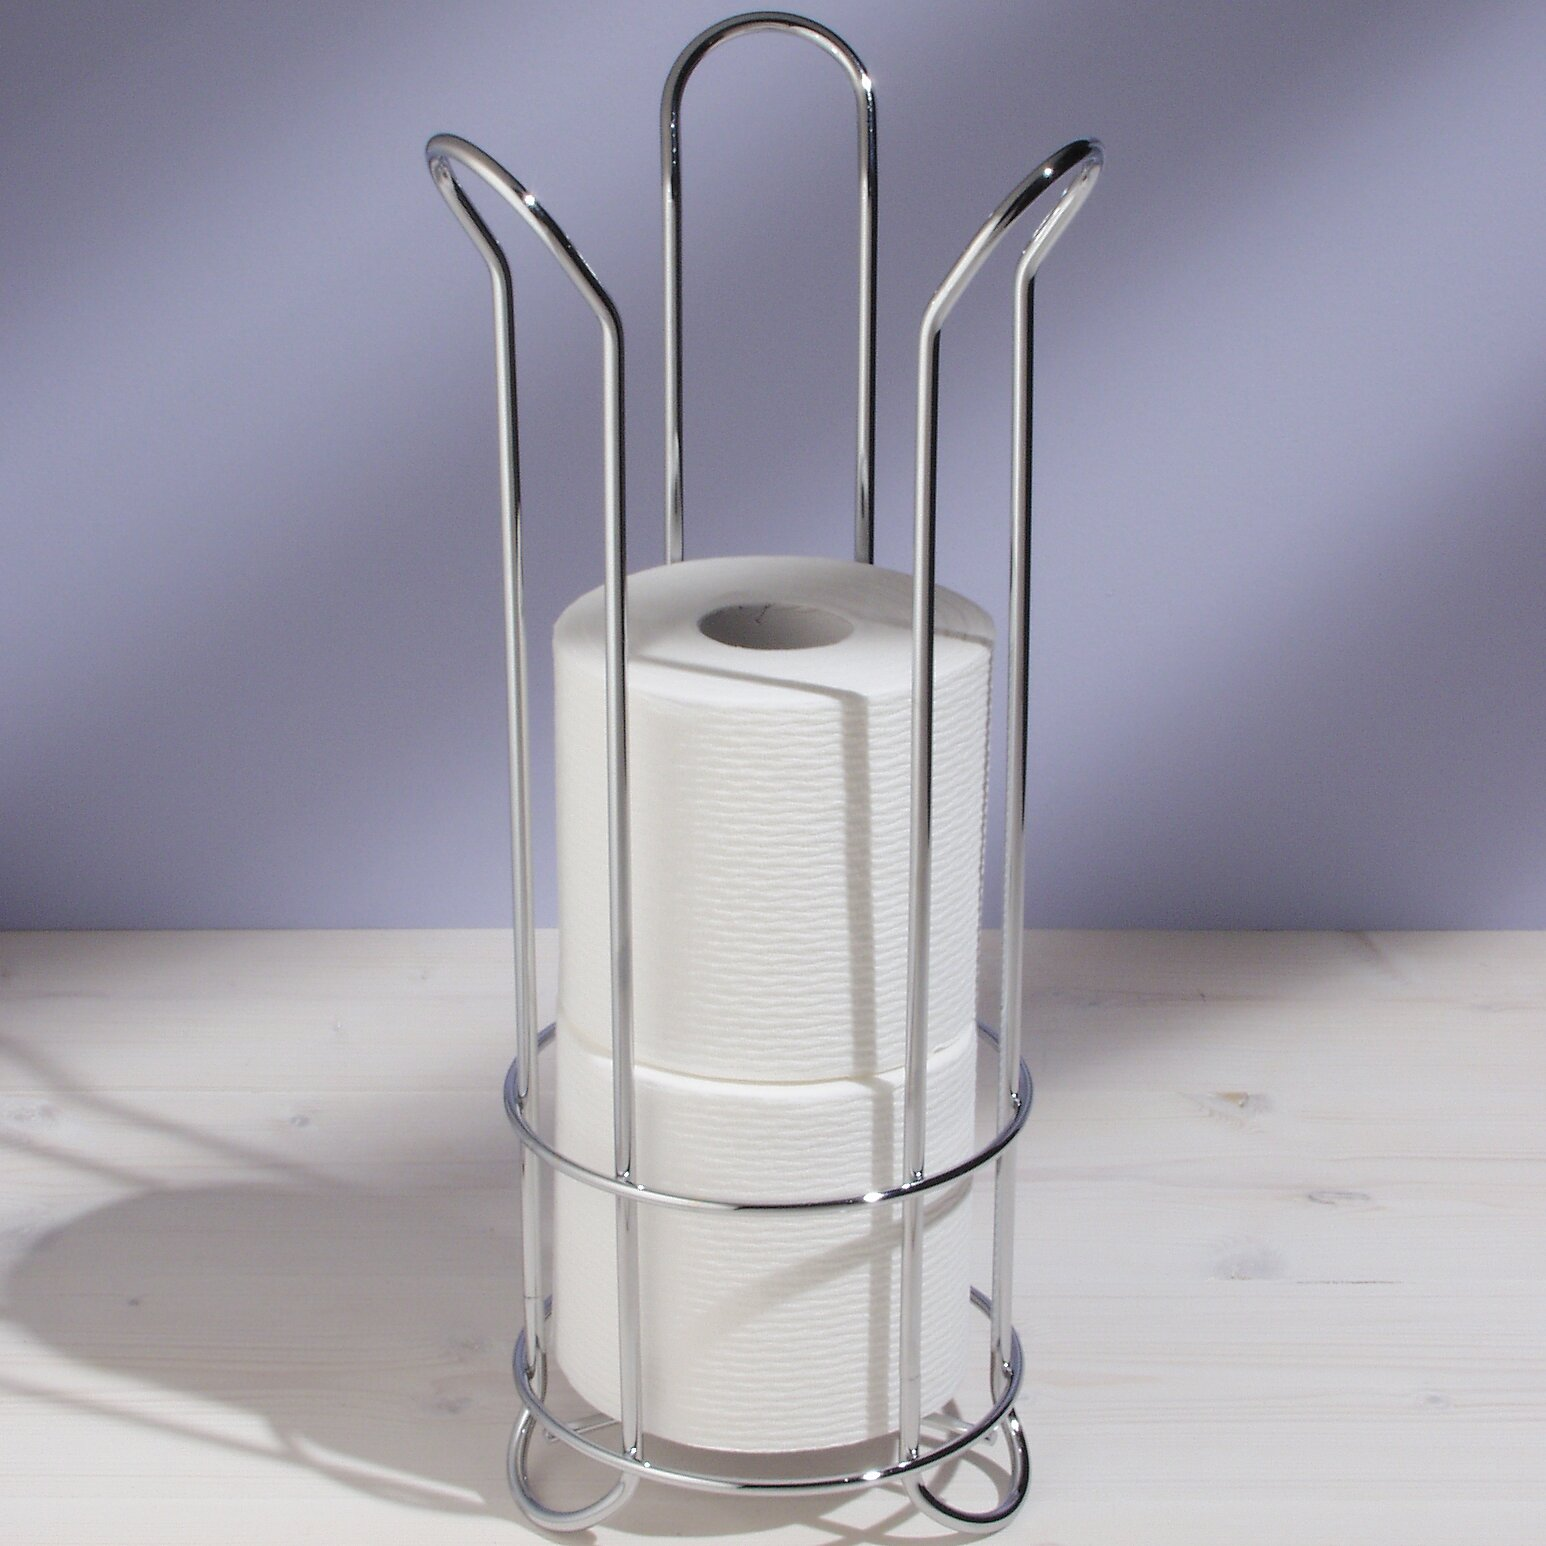 Interdesign free standing tulip toilet paper holder Toilet paper holder free standing